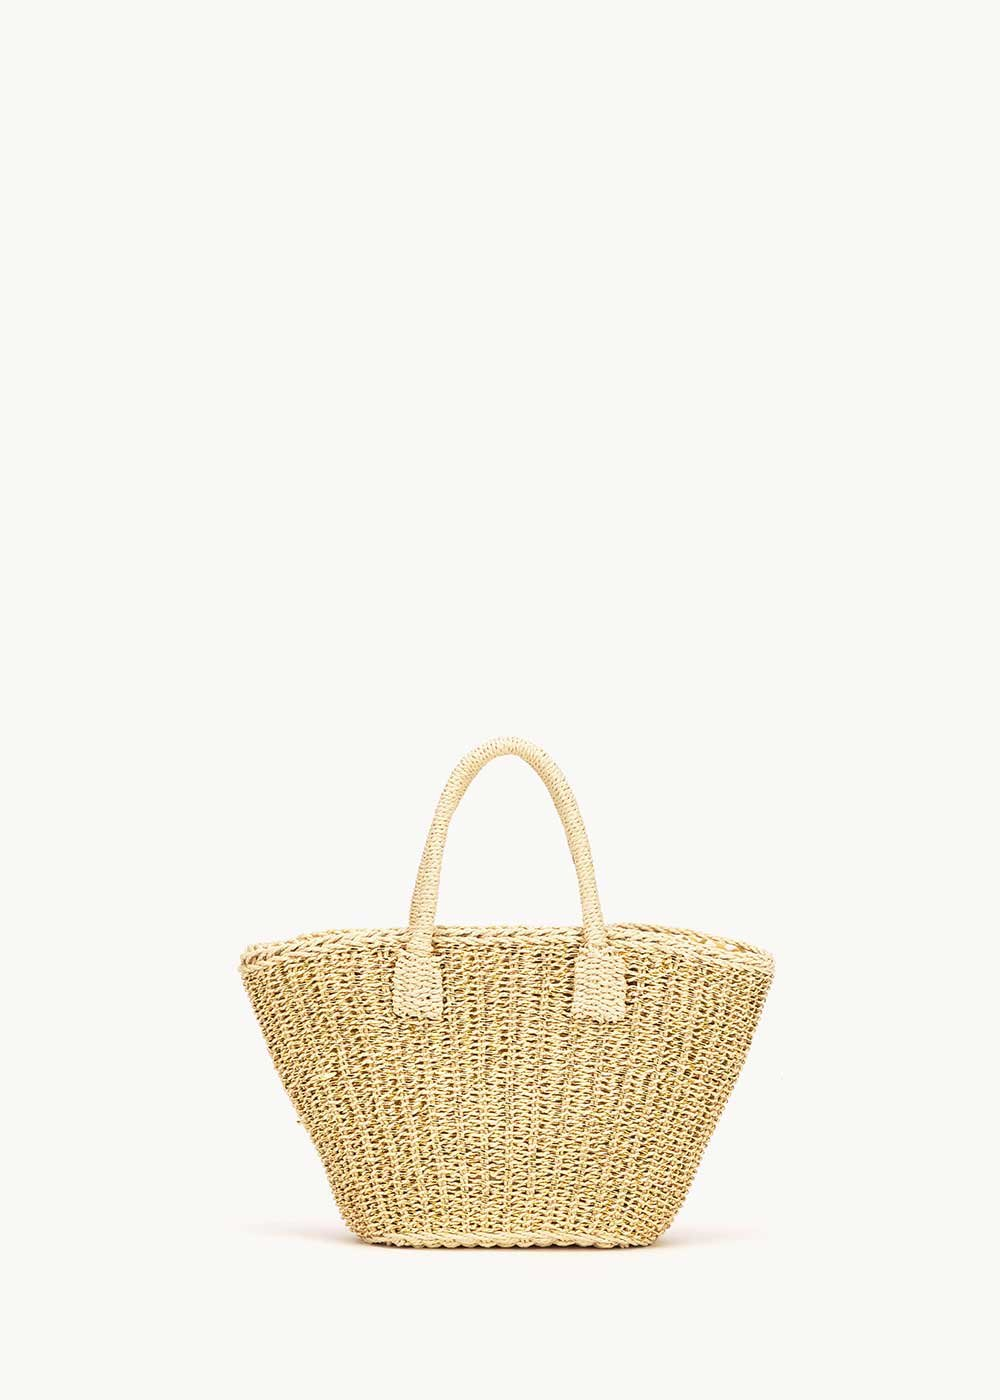 Balia straw bag with shoulder strap - Gold - Woman